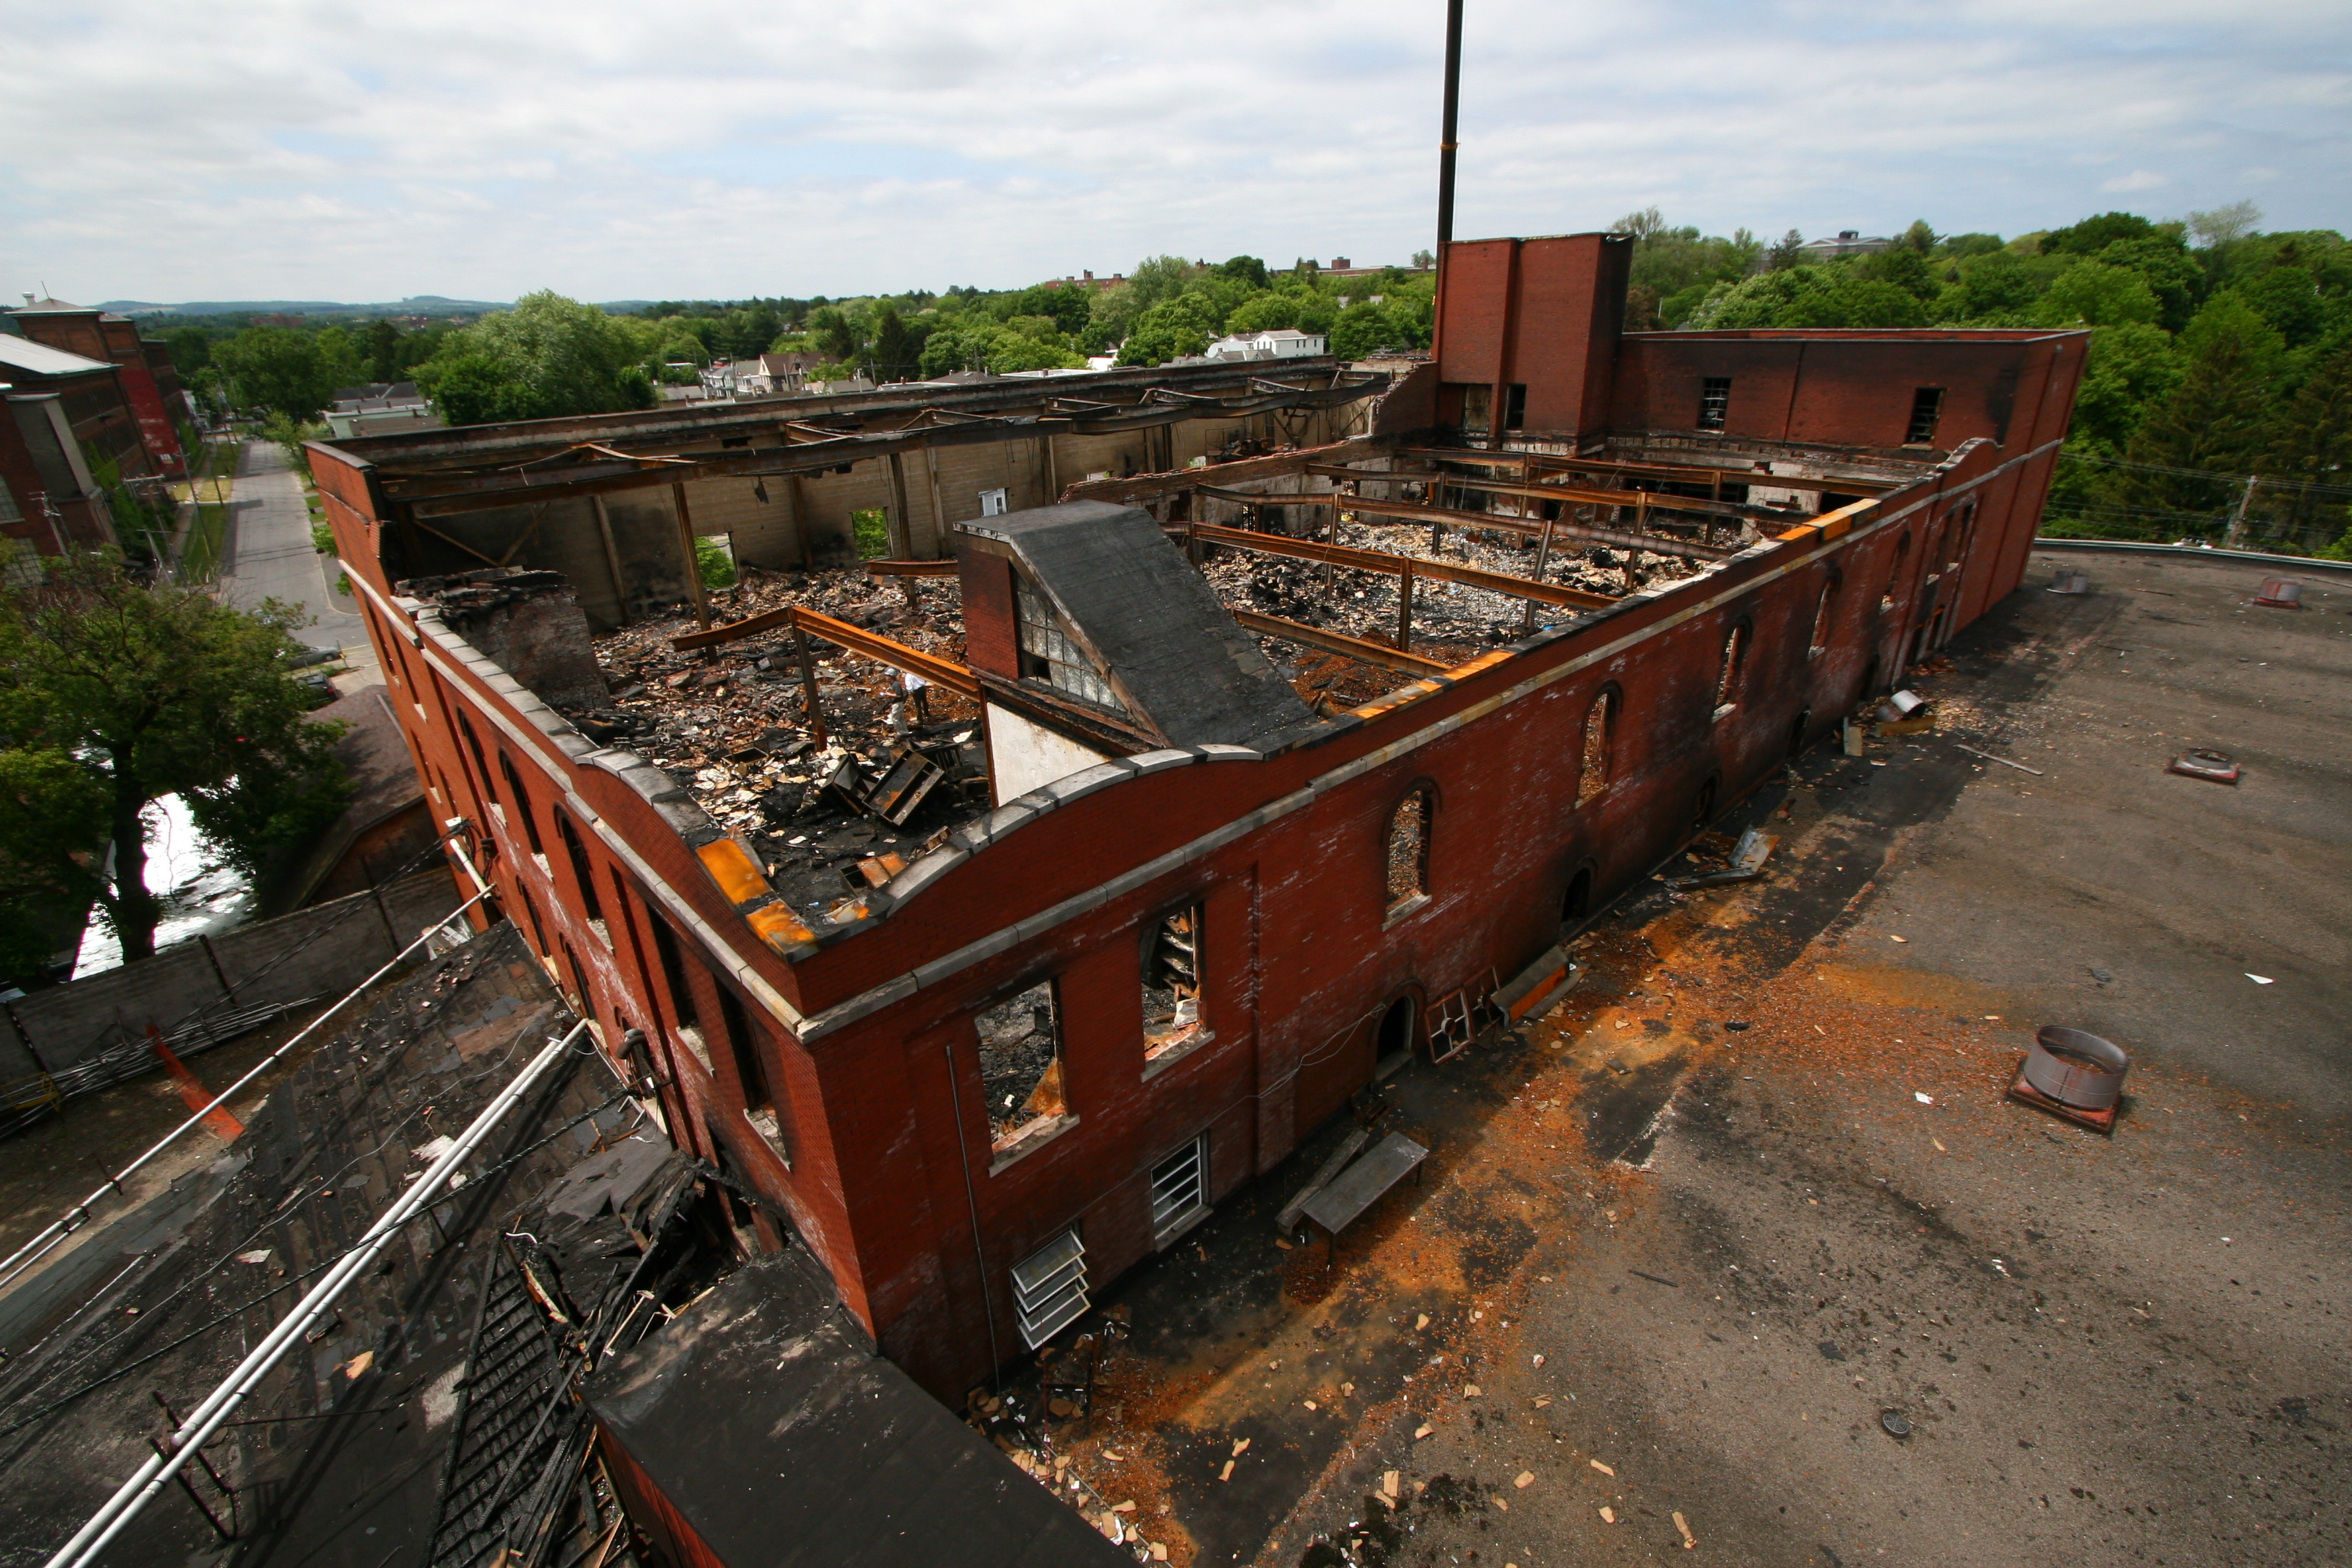 Commercial Business Fire Insurance Claim - The Greenspan Co./Adjusters International